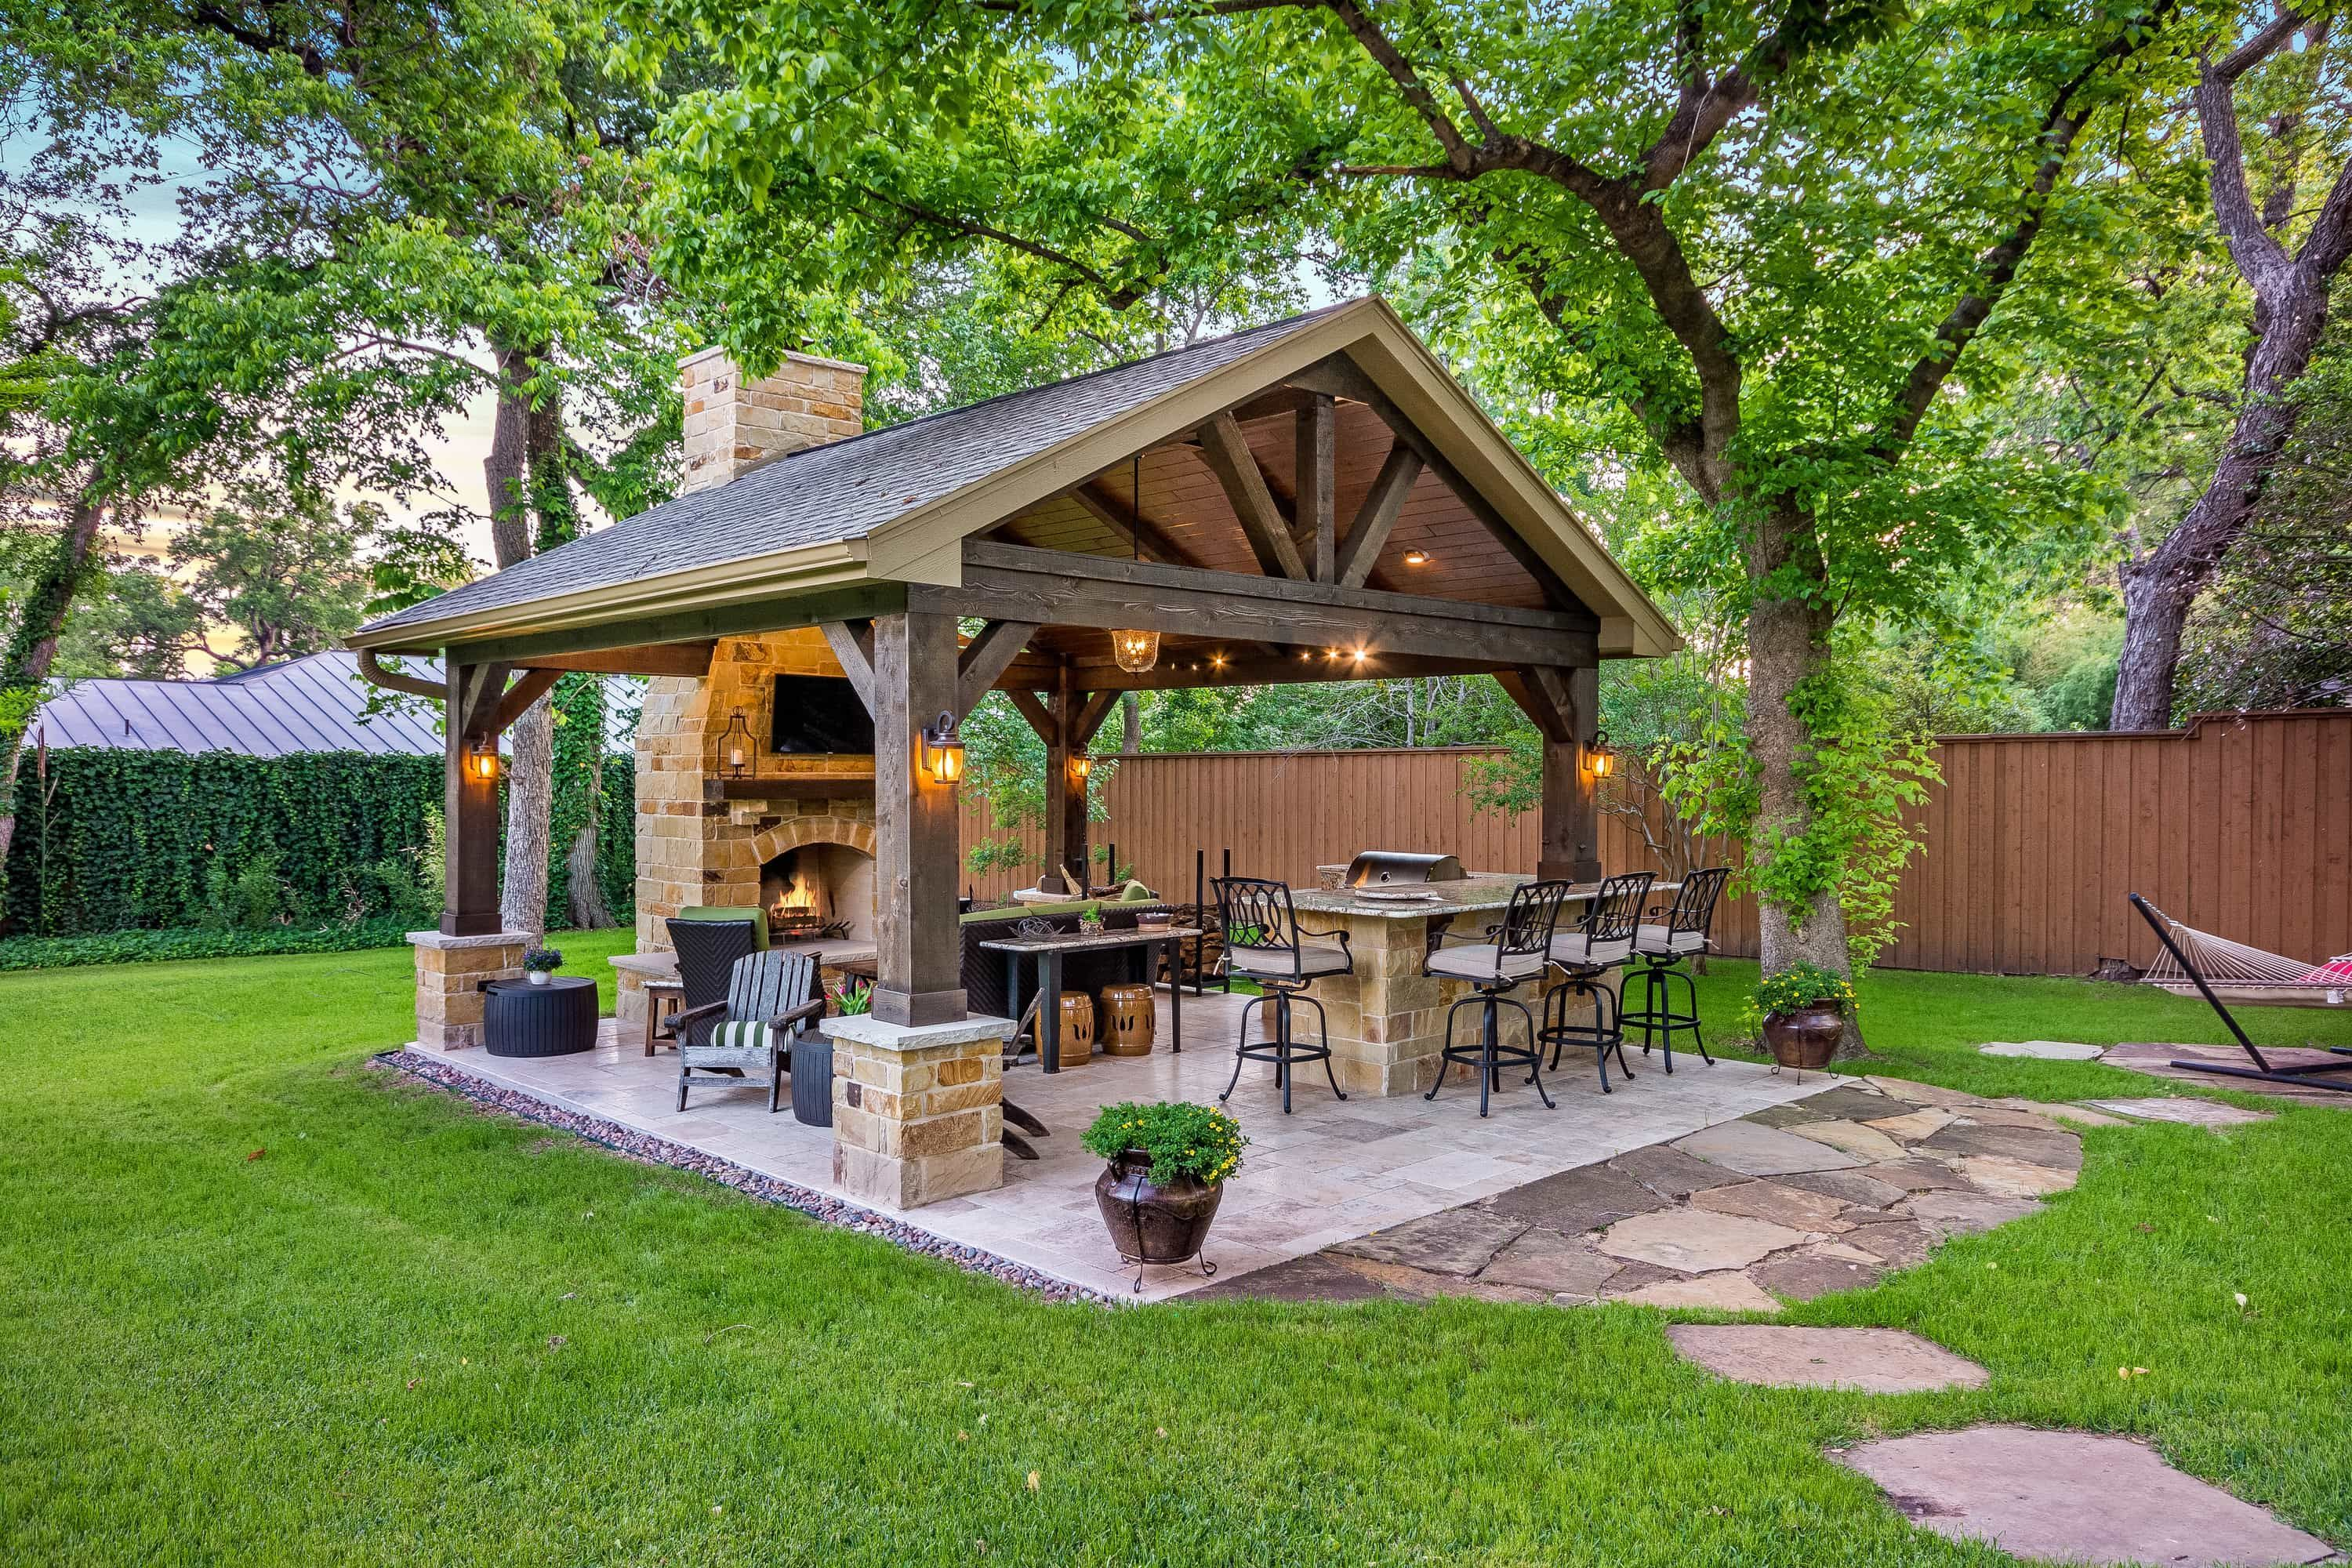 This Freestanding Covered Patio With An Outdoor Kitchen And Fireplace